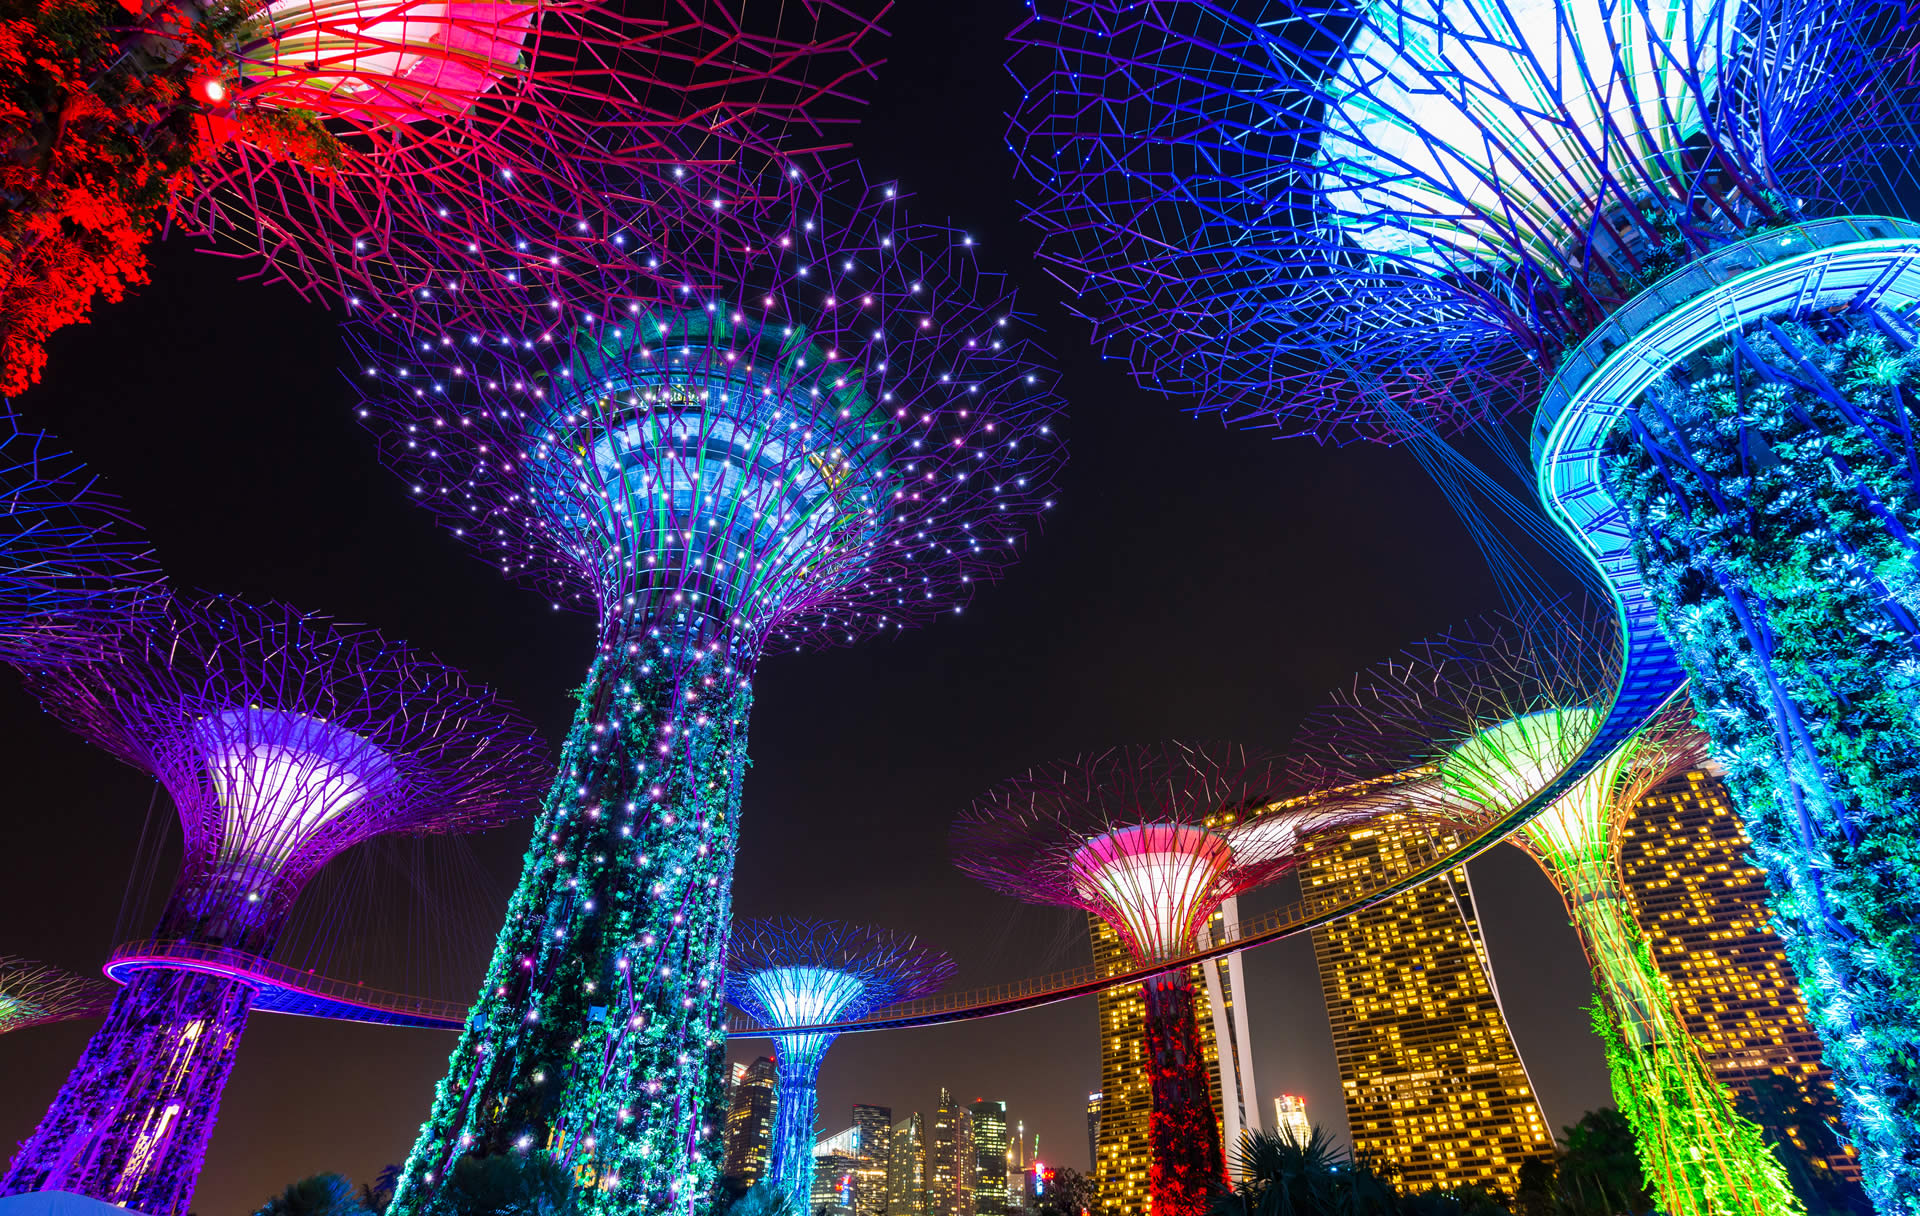 Singapore public holidays for 2020 announced